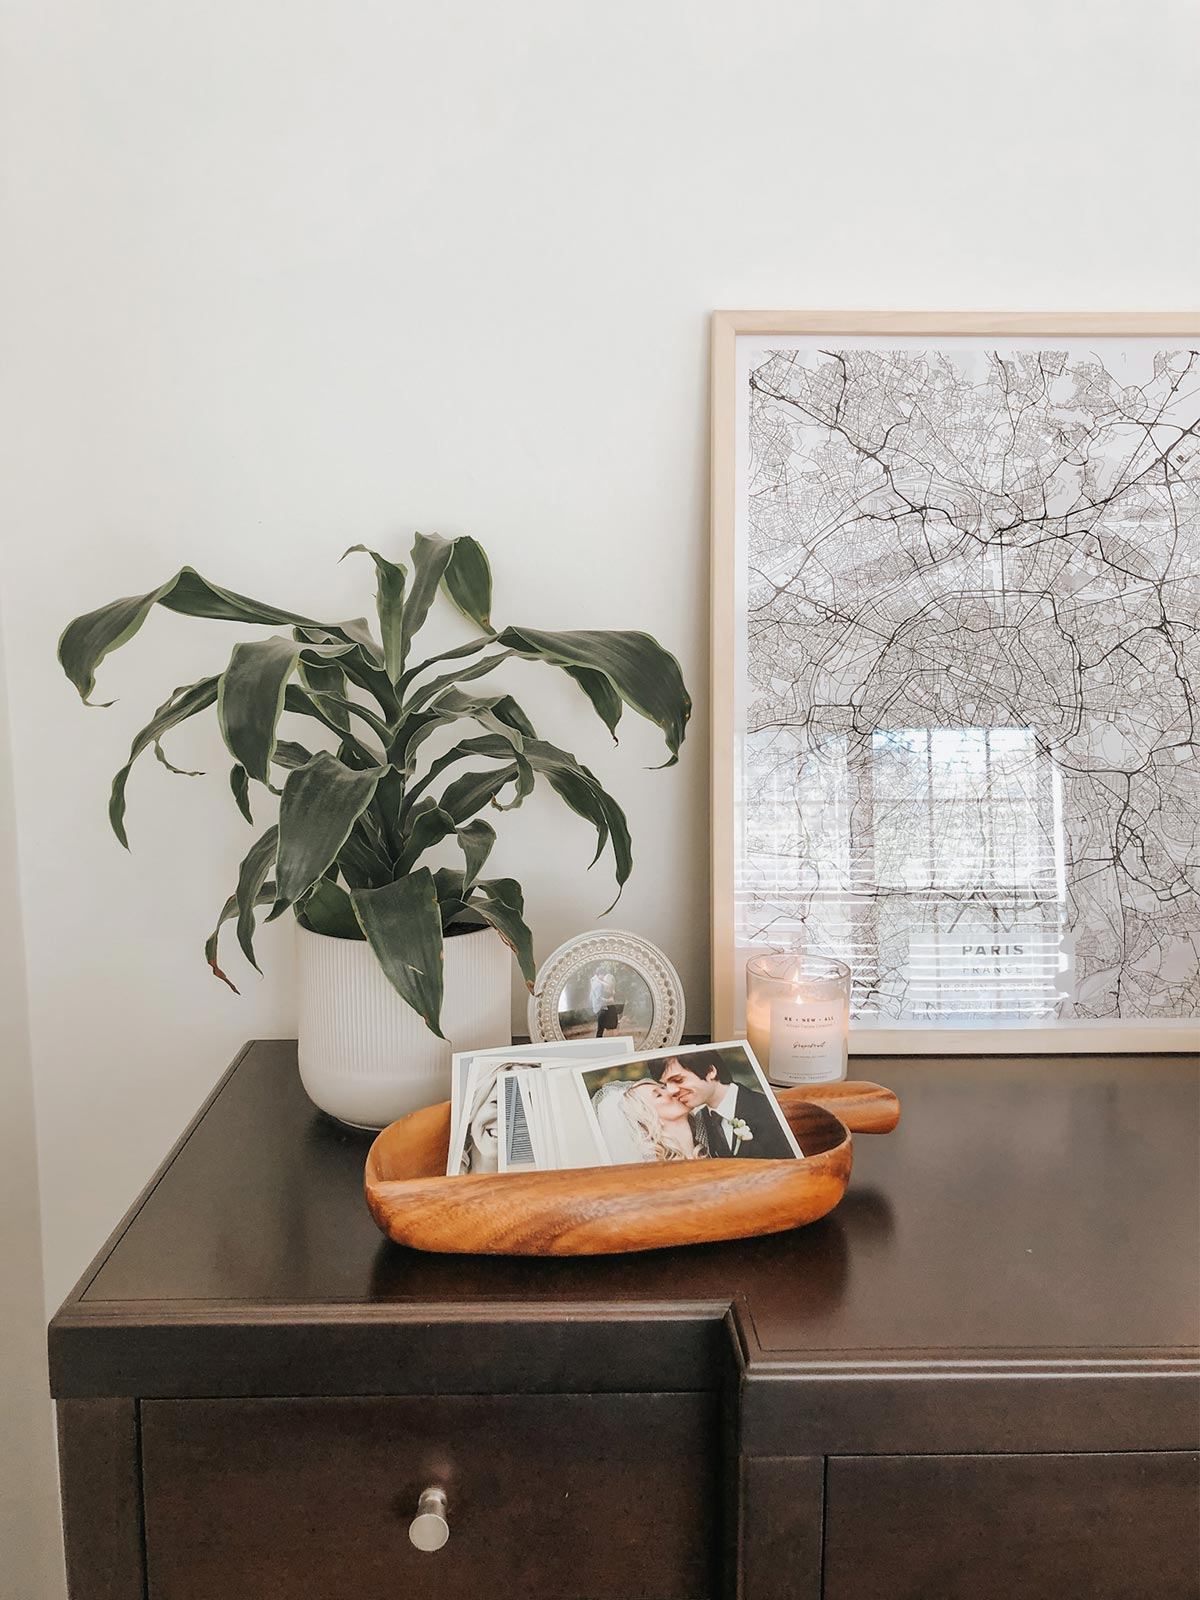 Artifact Uprising Square Prints in decorative wooden bowl on dresser next to plant and large framed photo of snow-covered tree branches